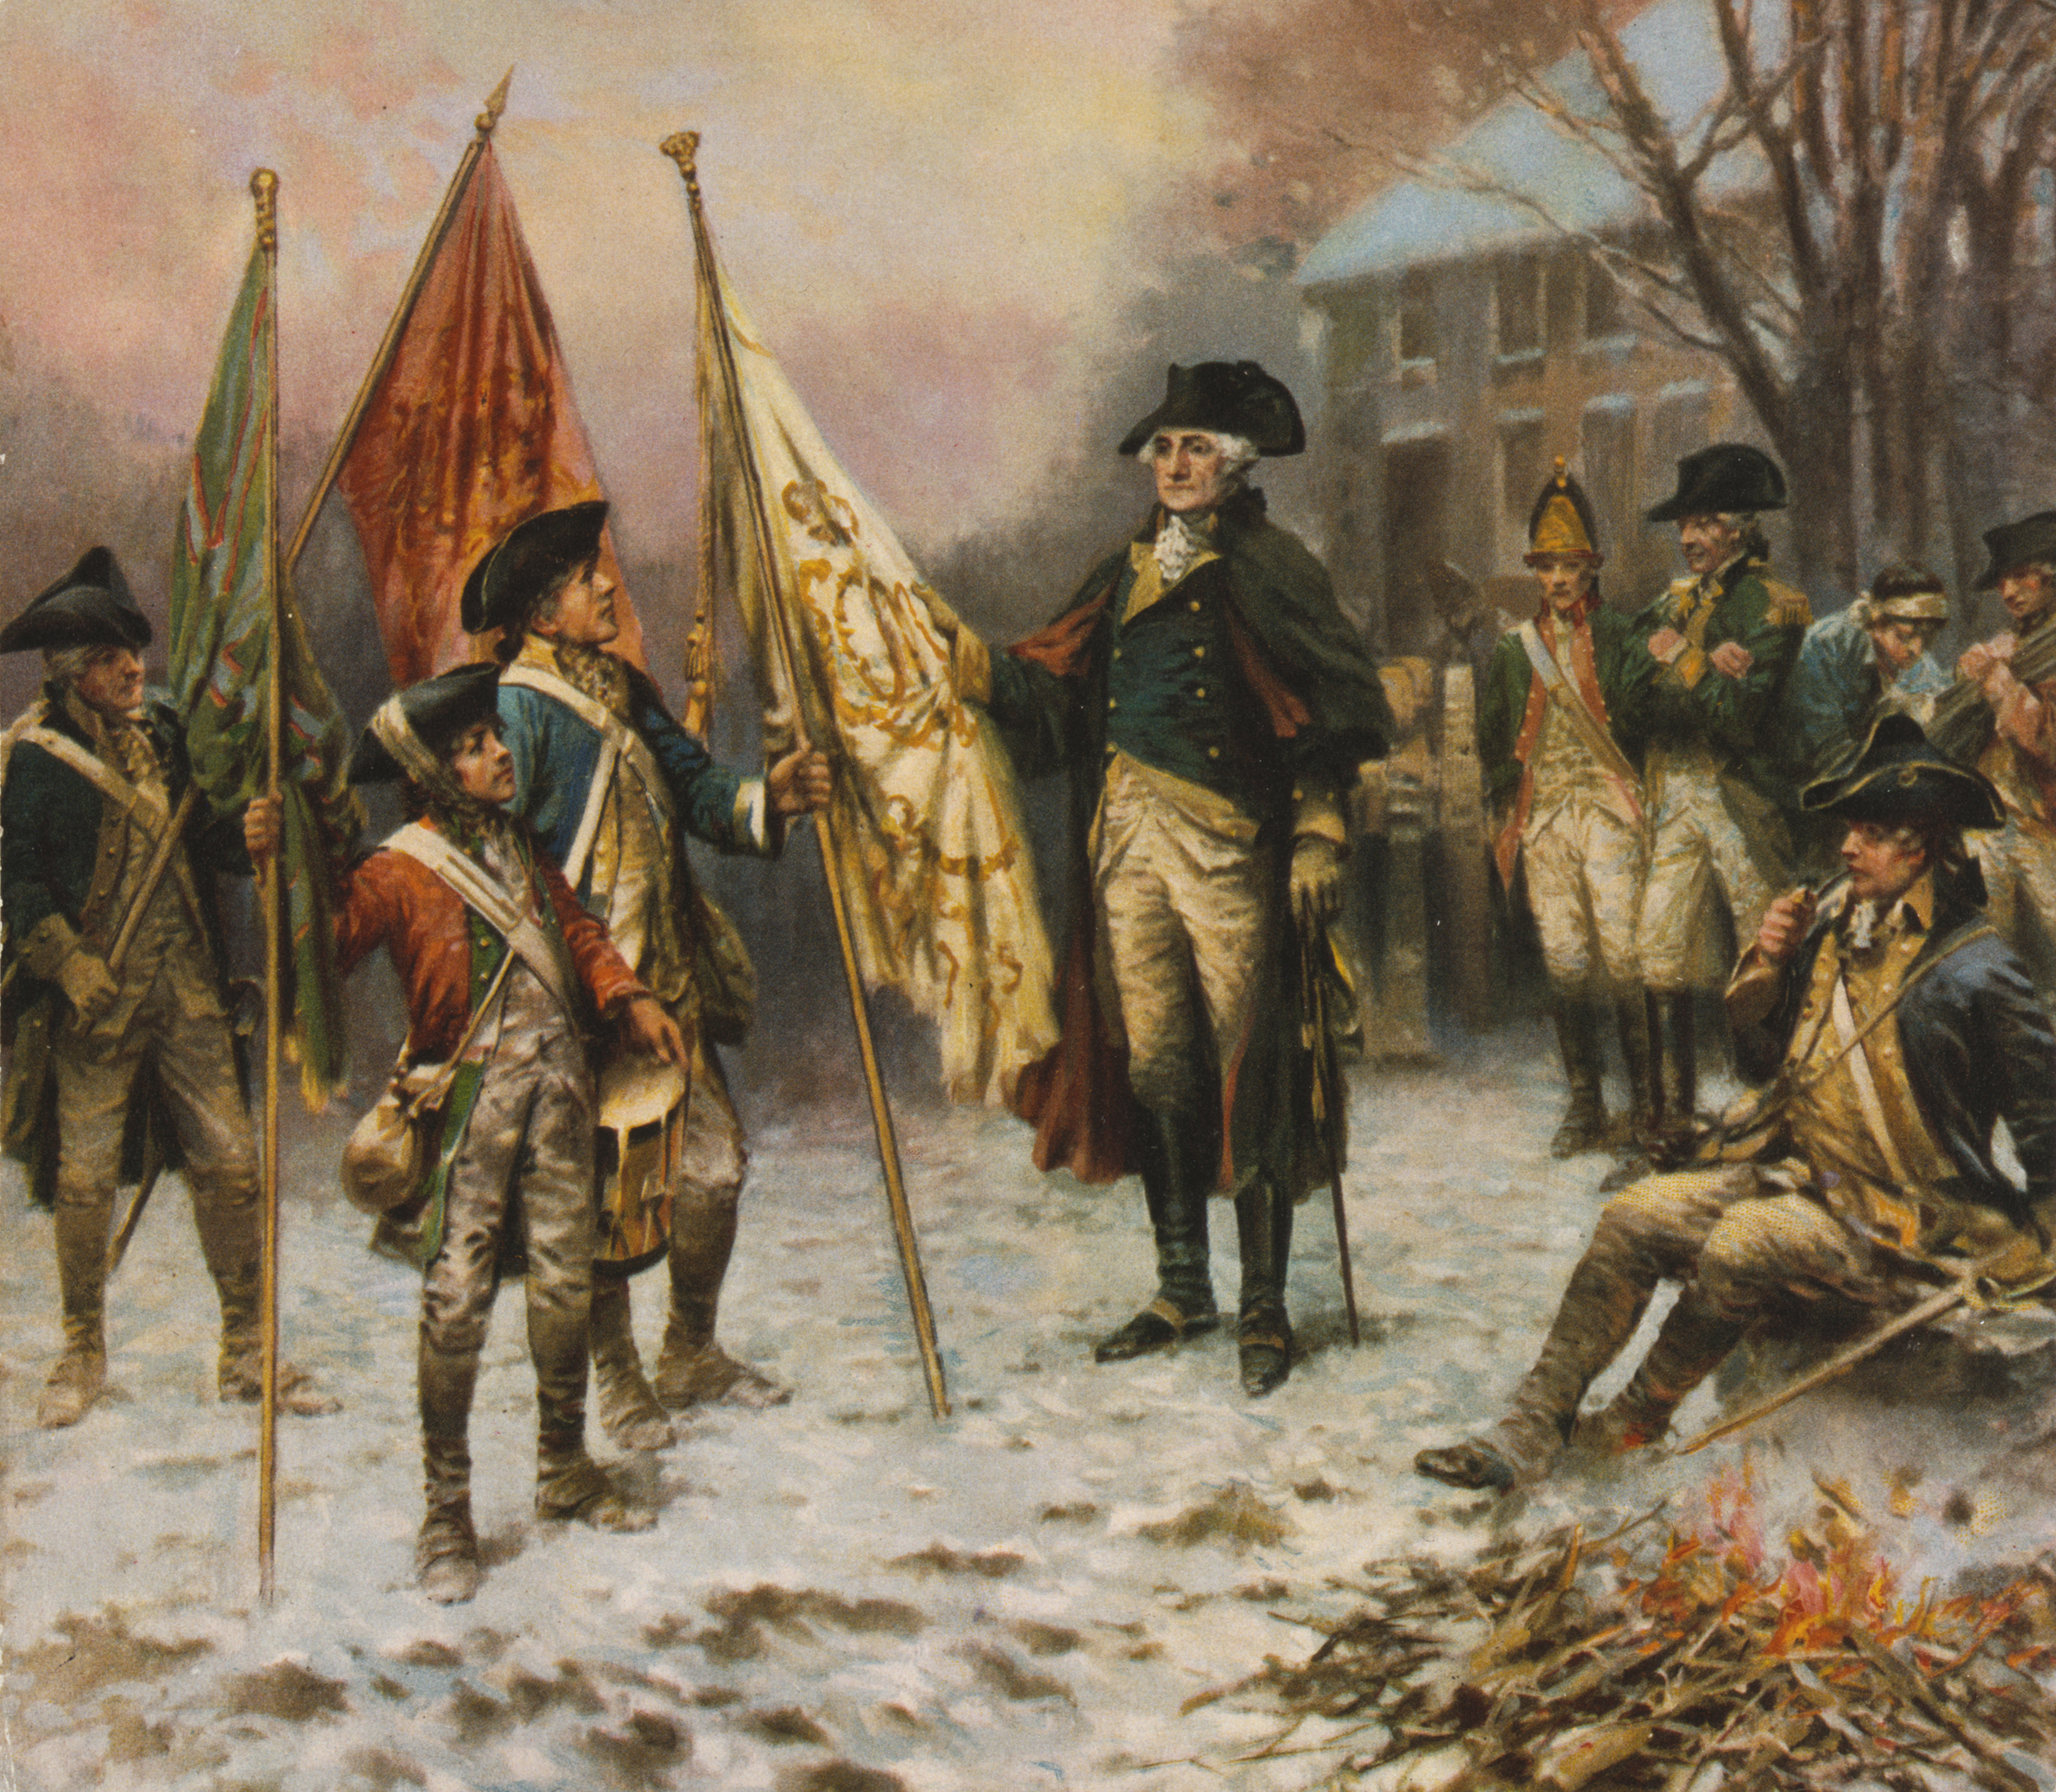 the battle of trenton The battle of trenton was a battle which took place on december 26, 1776,  during the american revolutionary war, after washington's.